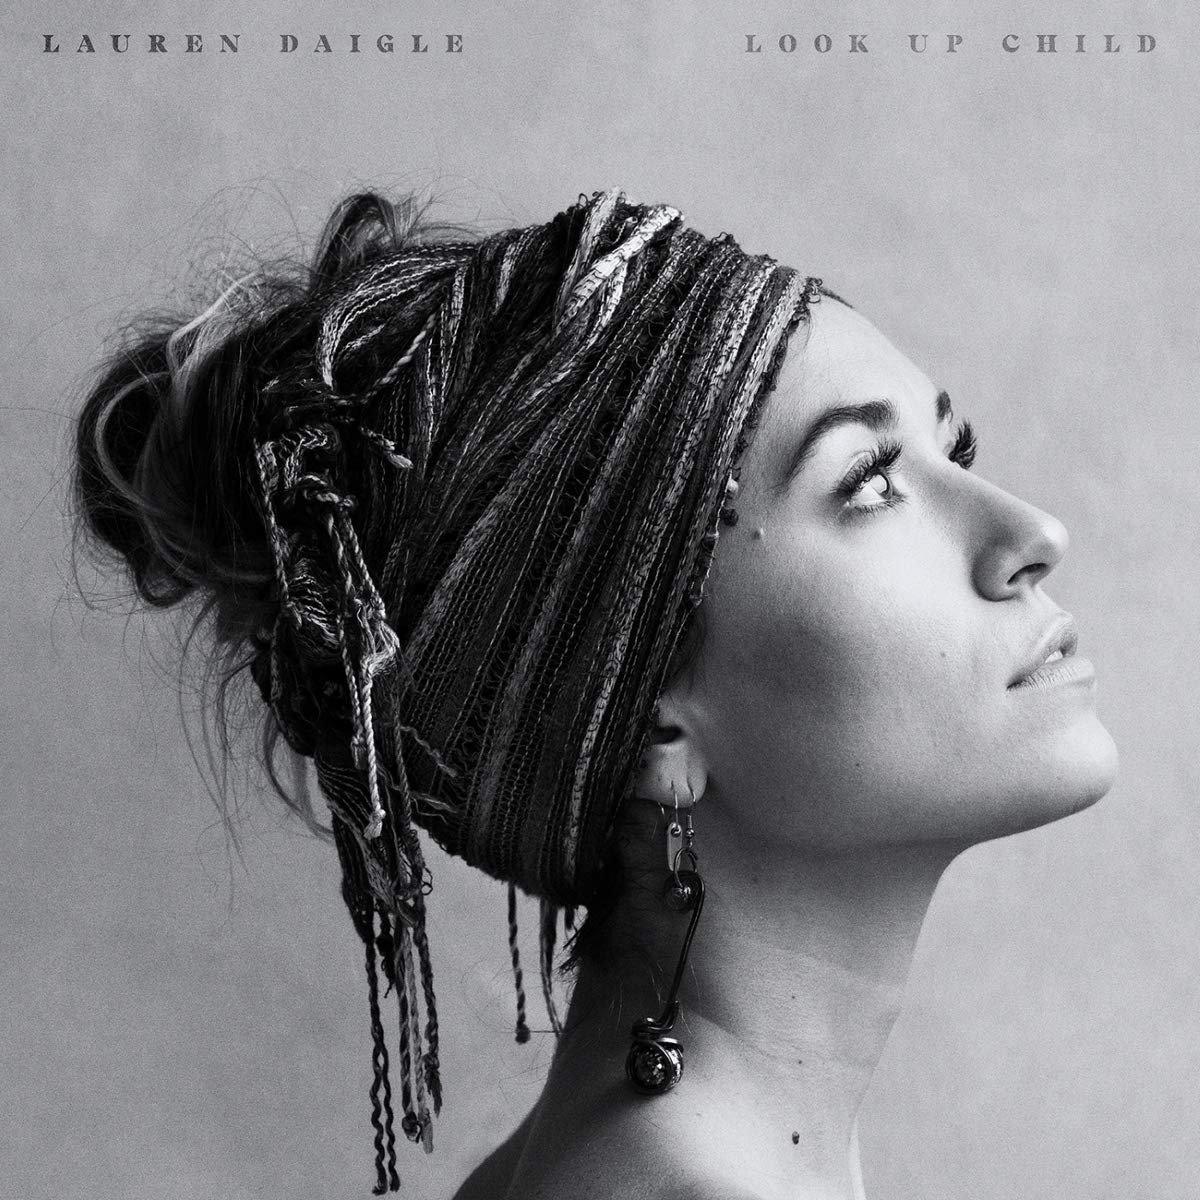 Lauren Daigle - Look Up Child - Vinyl